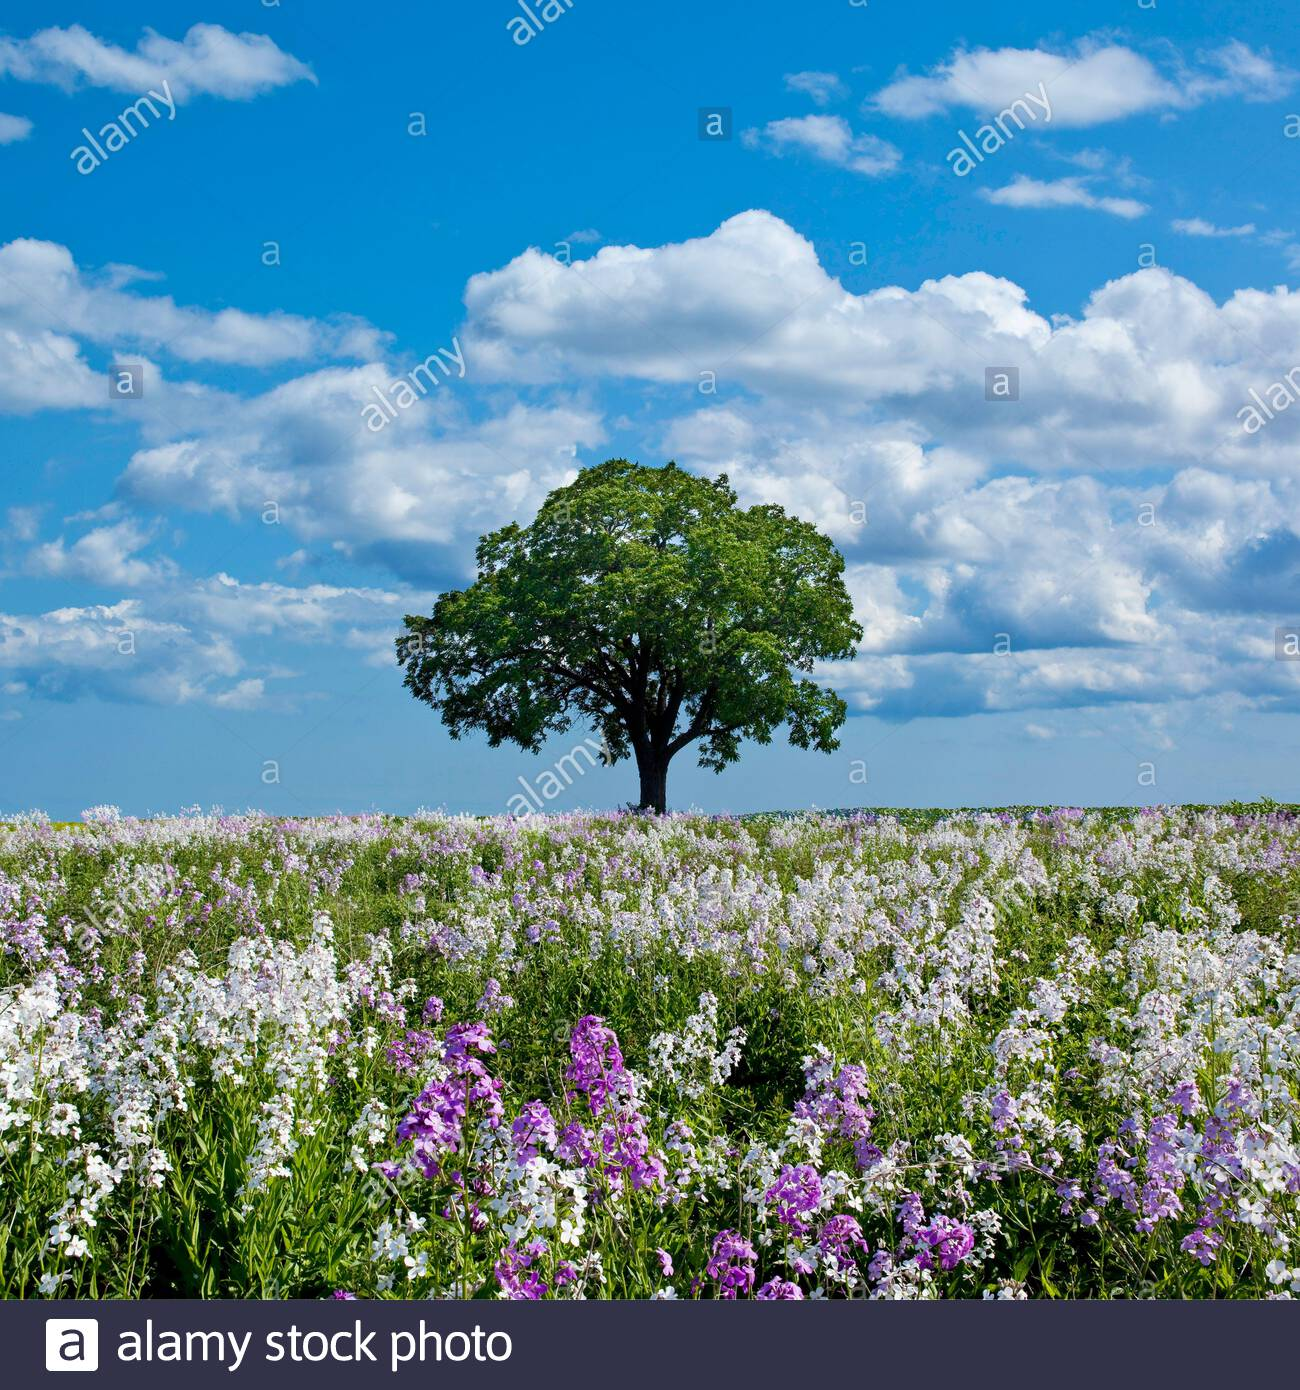 spring-flowers-hesperis-matronalis-and-s